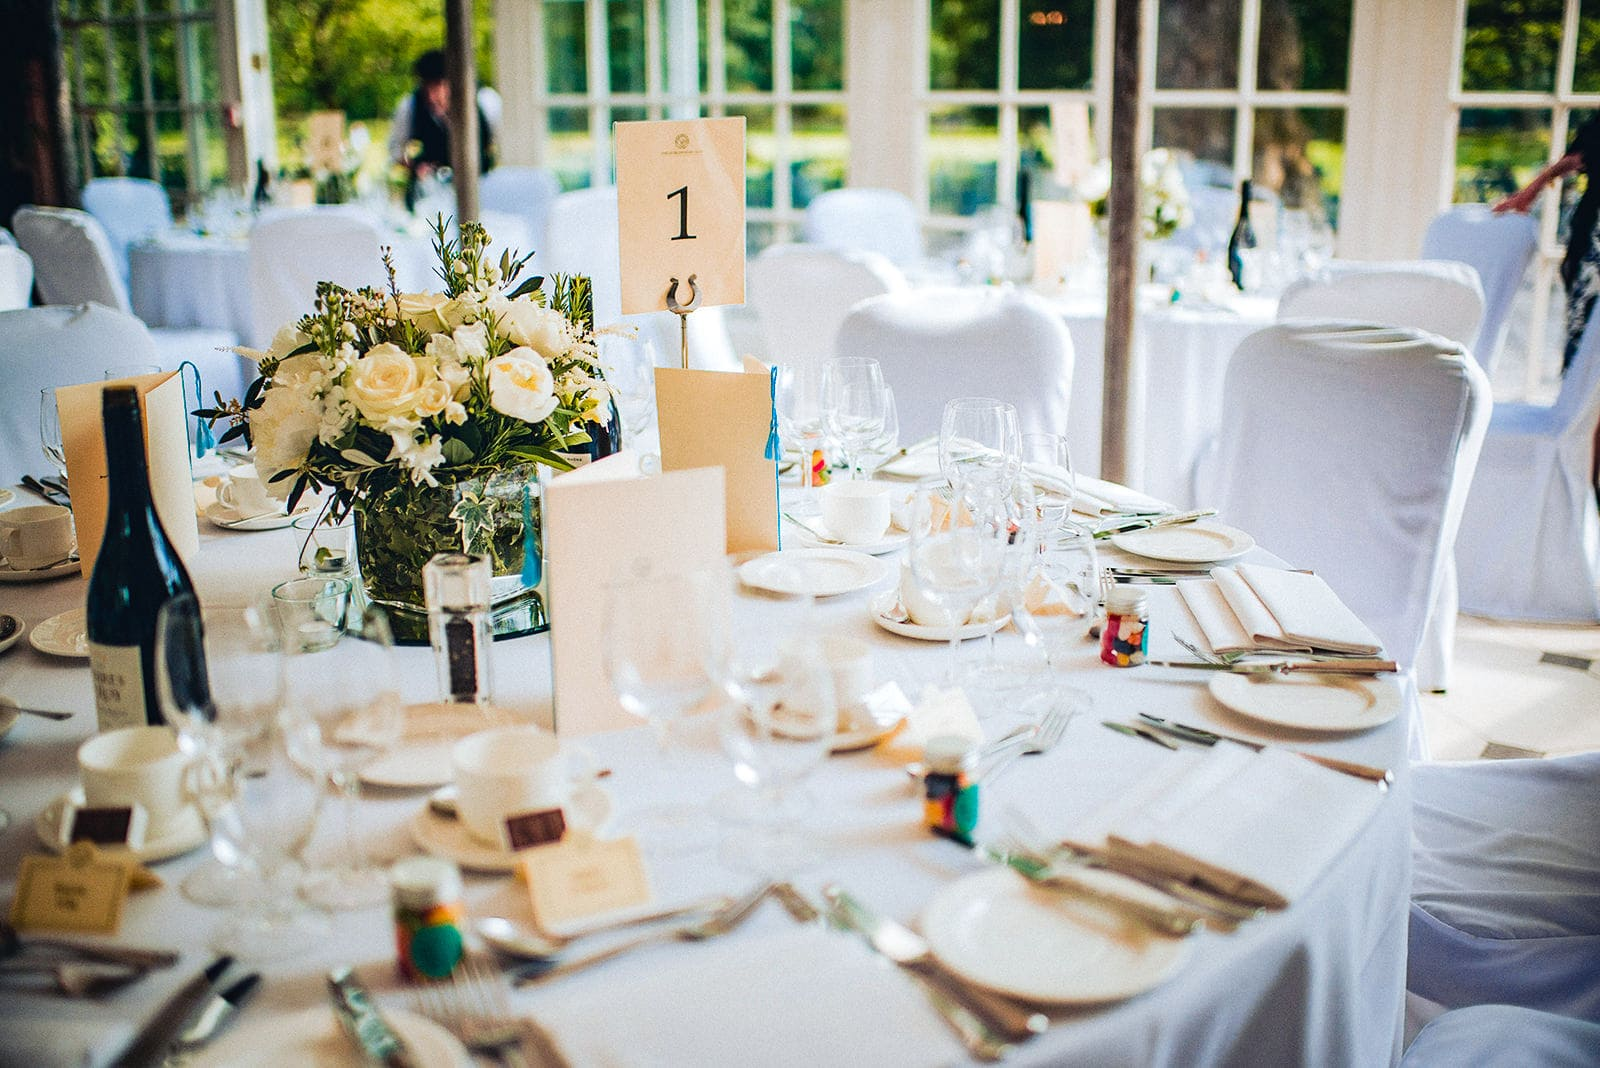 The Hurlingham Club's Terrace Room set for a summer wedding breakfast